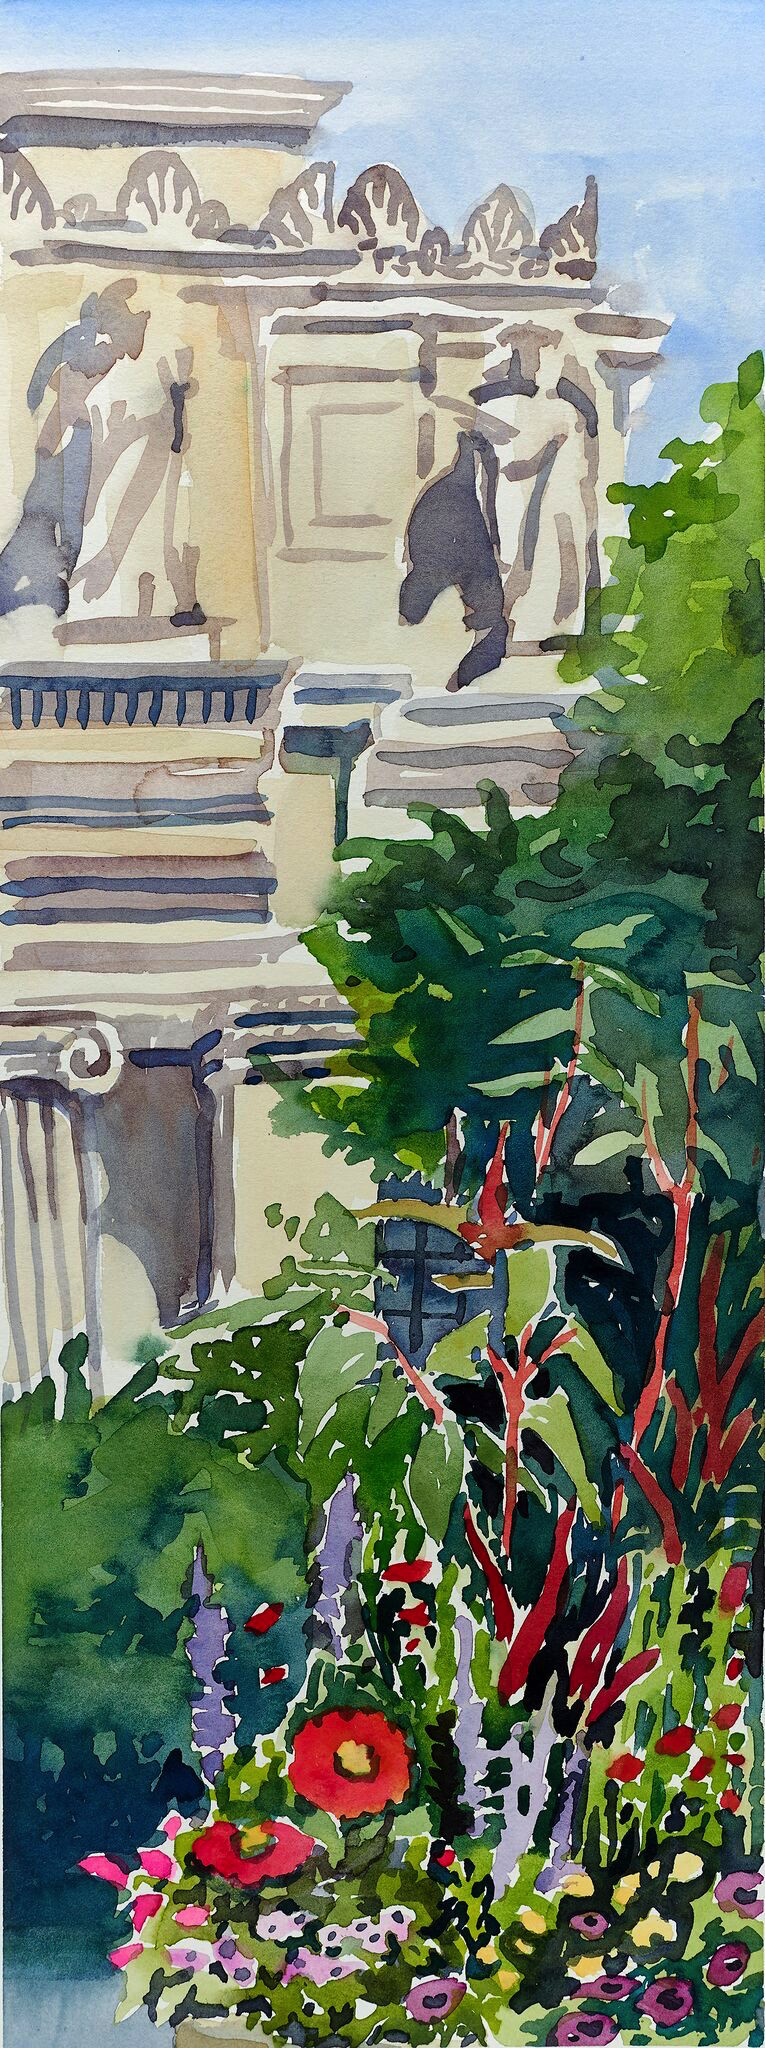 Brooklyn_Museum_and_Botanical_Gardens.jpg